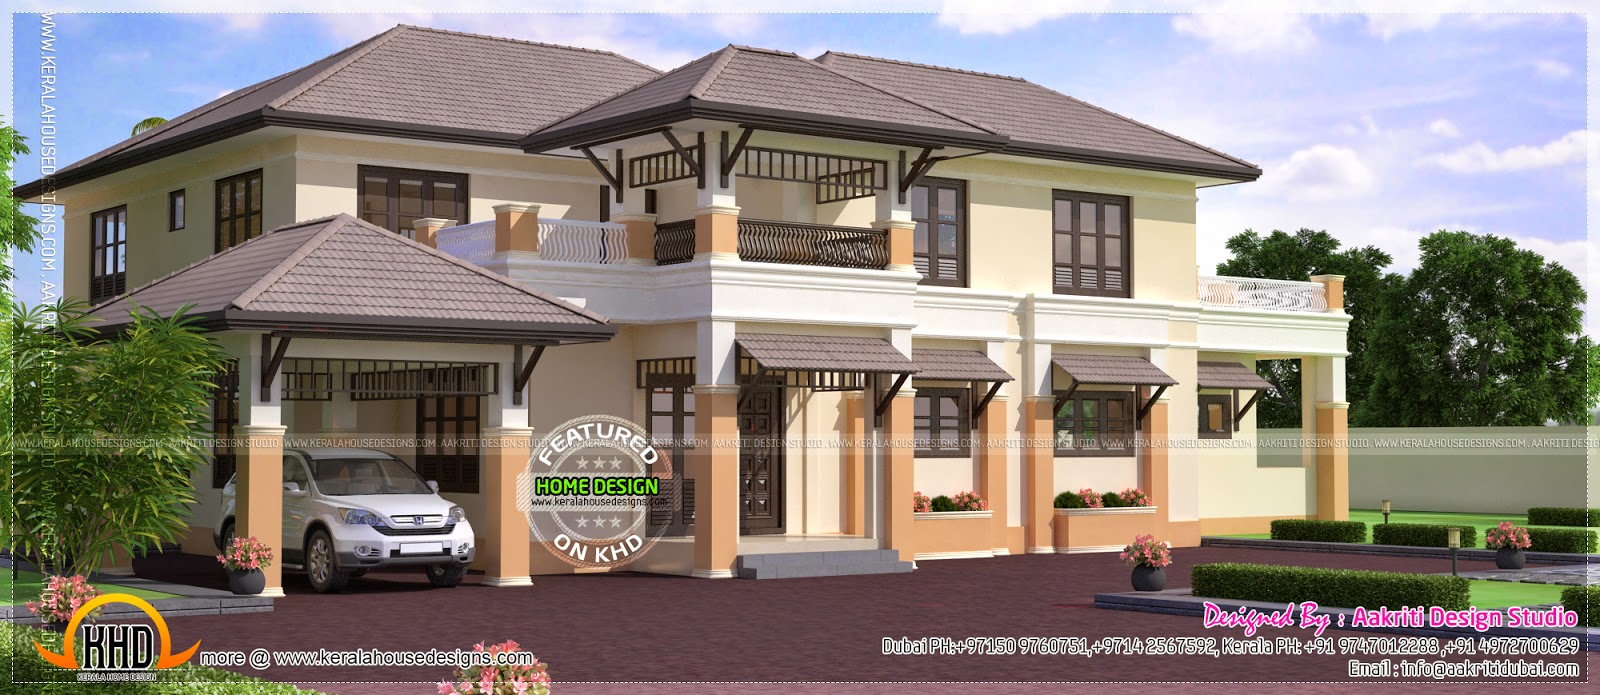 home maps design 400 square yard home design and style home maps design 400 square yard home design and style